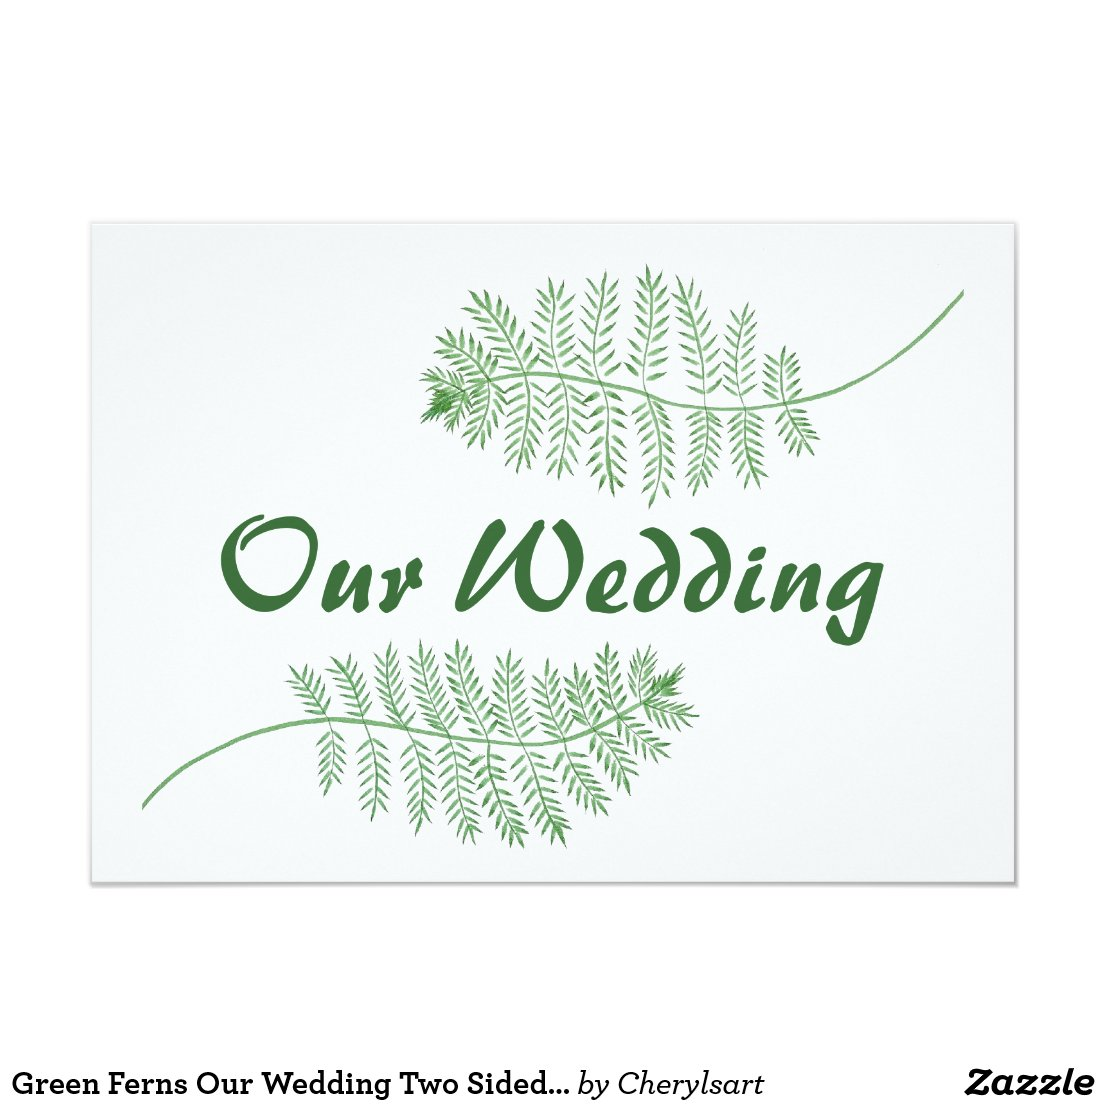 Green Ferns Our Wedding Two Sided Invitations